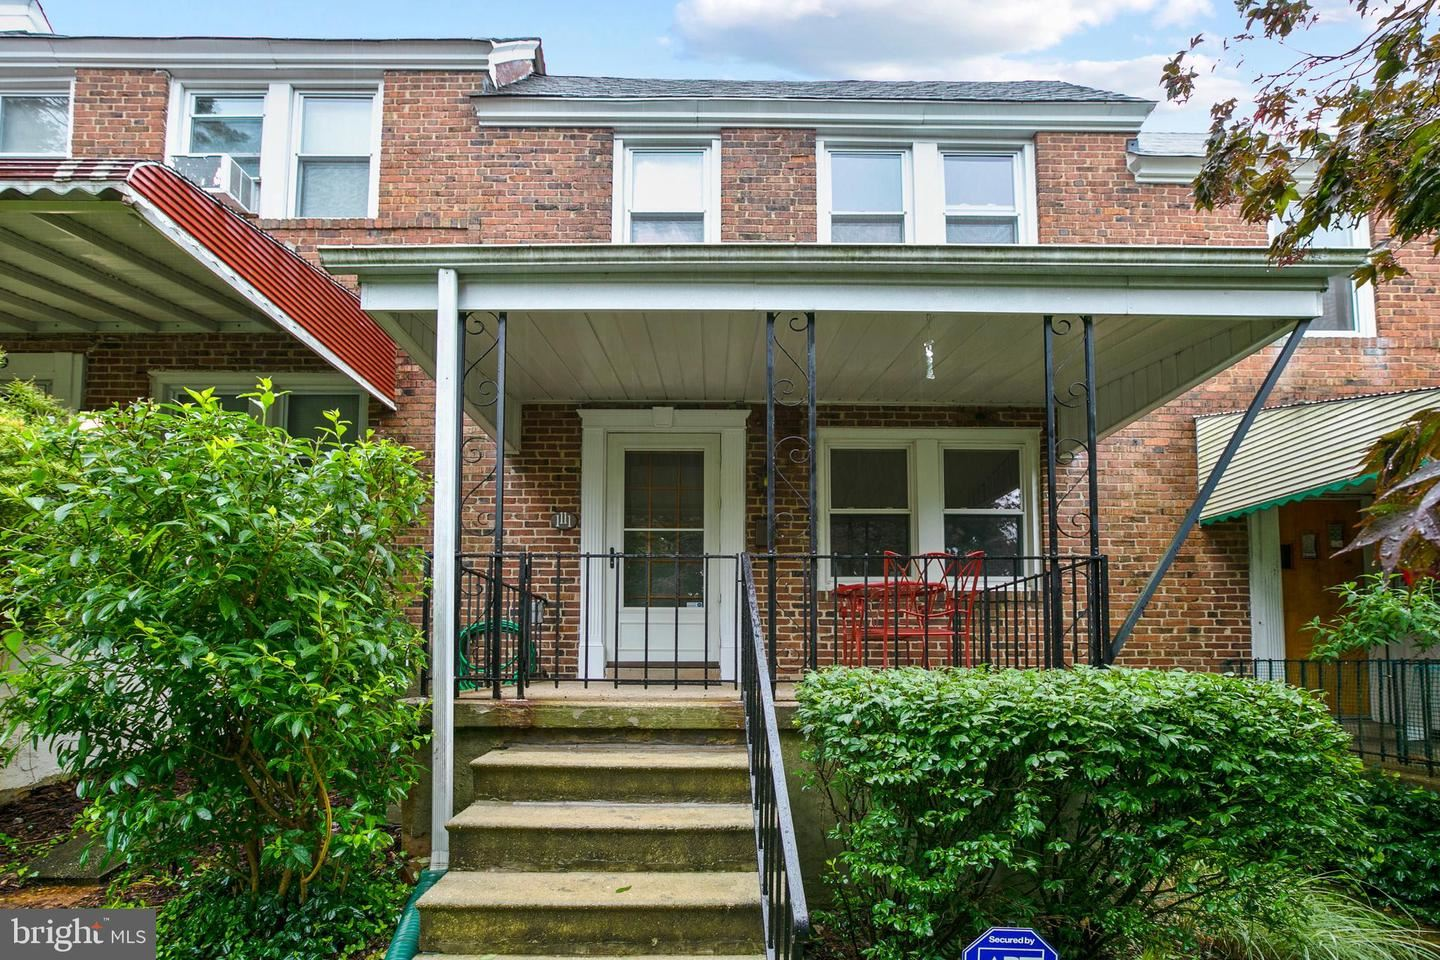 1111 ROLAND HEIGHTS AVE, Baltimore, MD 21211 - MLS#: MDBA554616